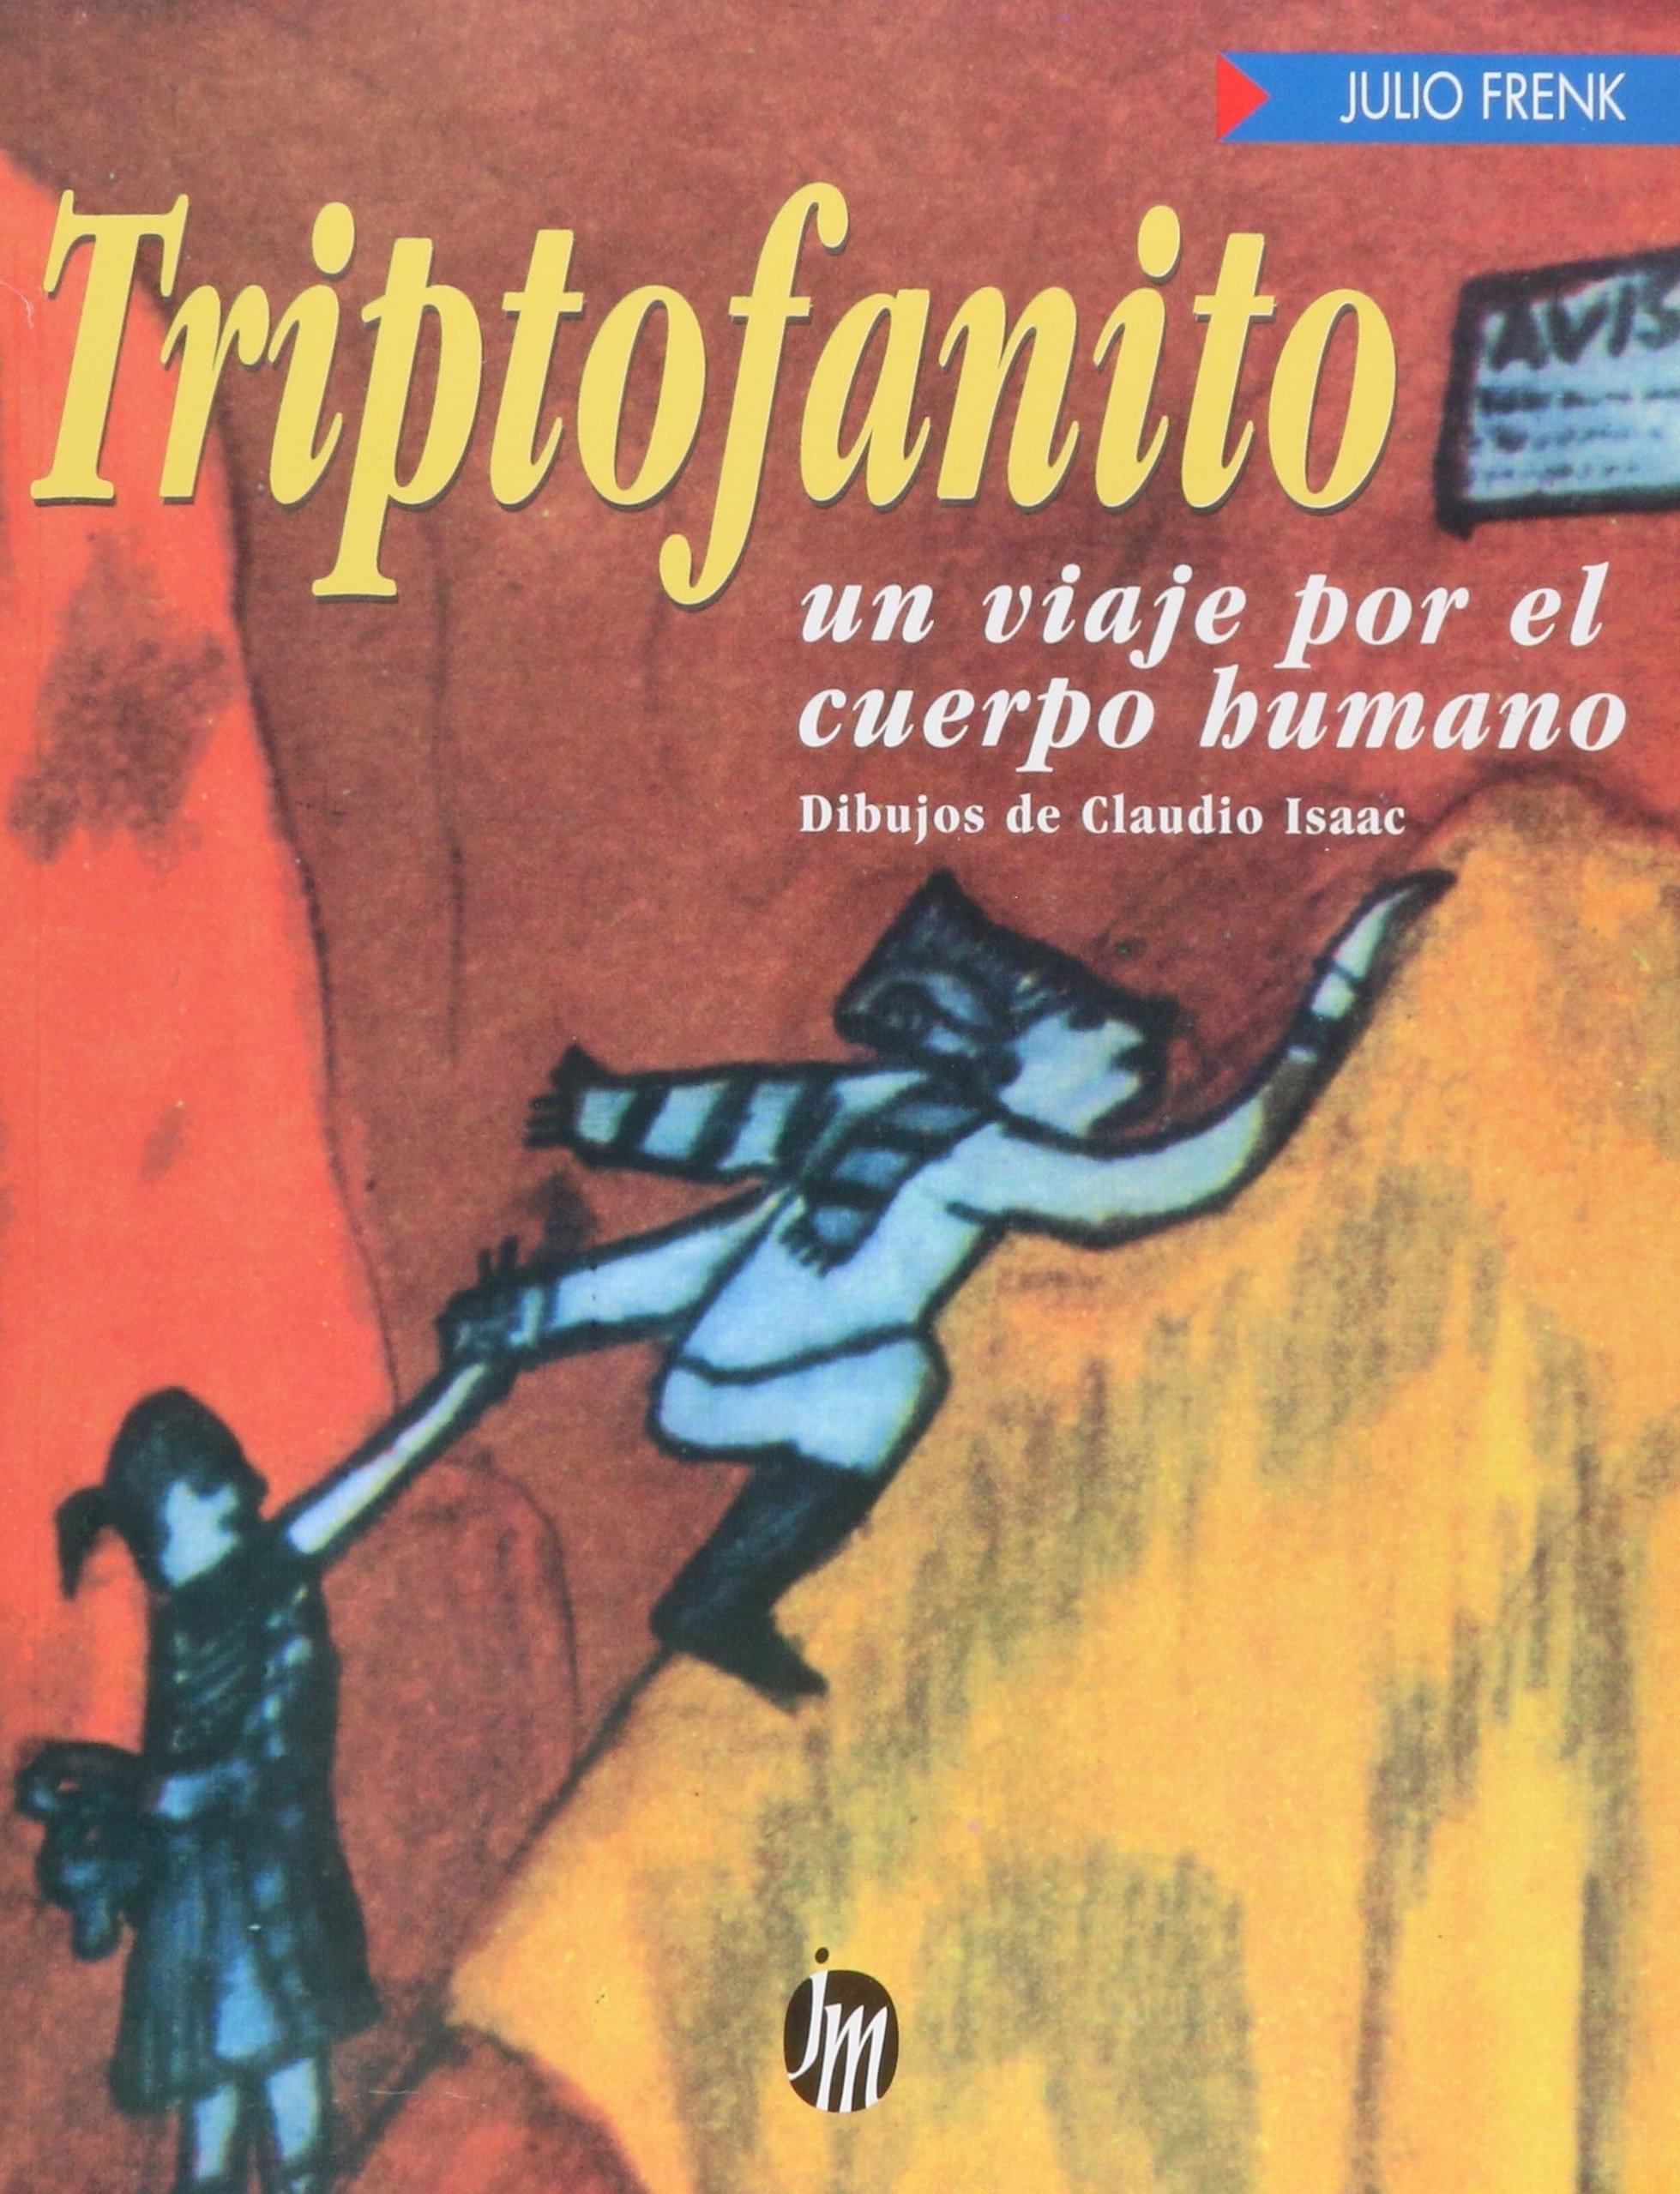 Amazon.com: Triptofanito (Infaltil y Juvenil) (Spanish Edition) (9789682704550): Julio Frenk: Books